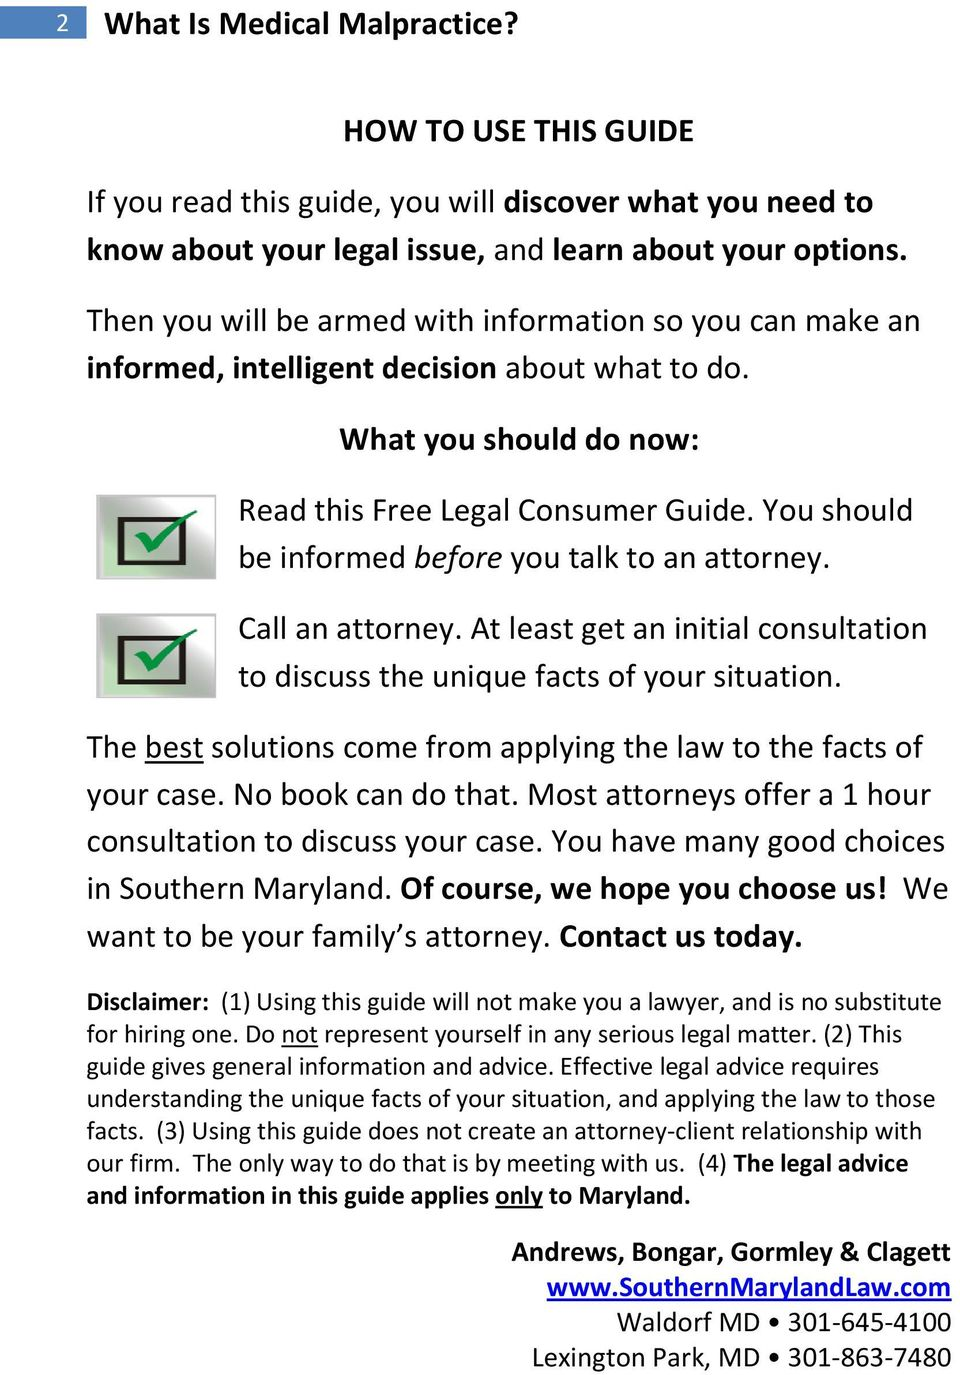 You should be informed before you talk to an attorney. Call an attorney. At least get an initial consultation to discuss the unique facts of your situation.